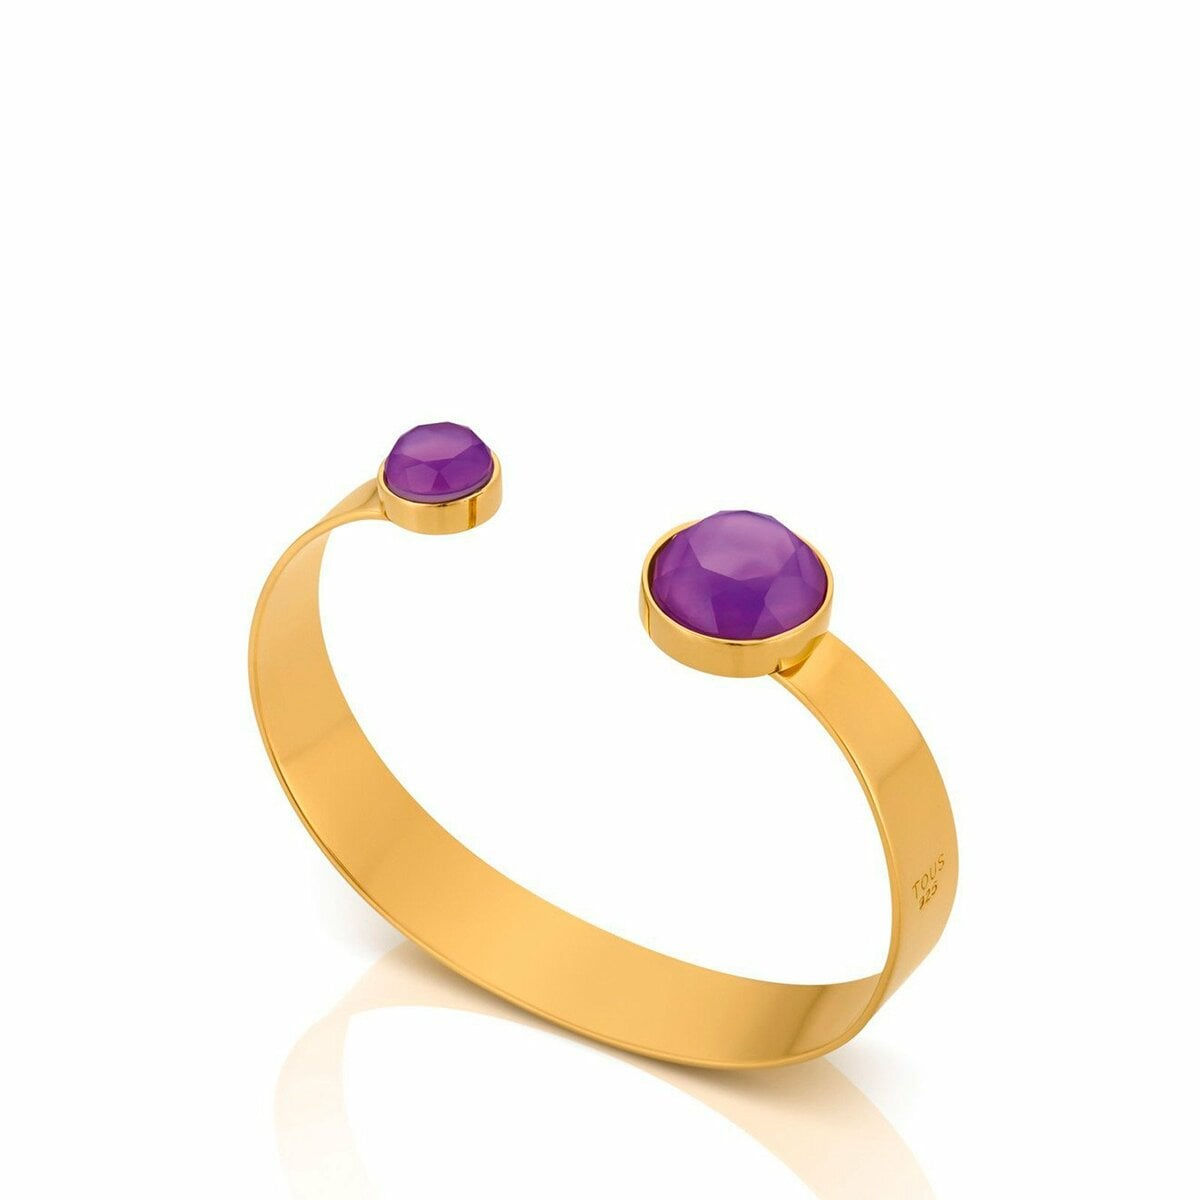 Vermeil Silver Bright Cuff with Amethyst and Mother of Pearl